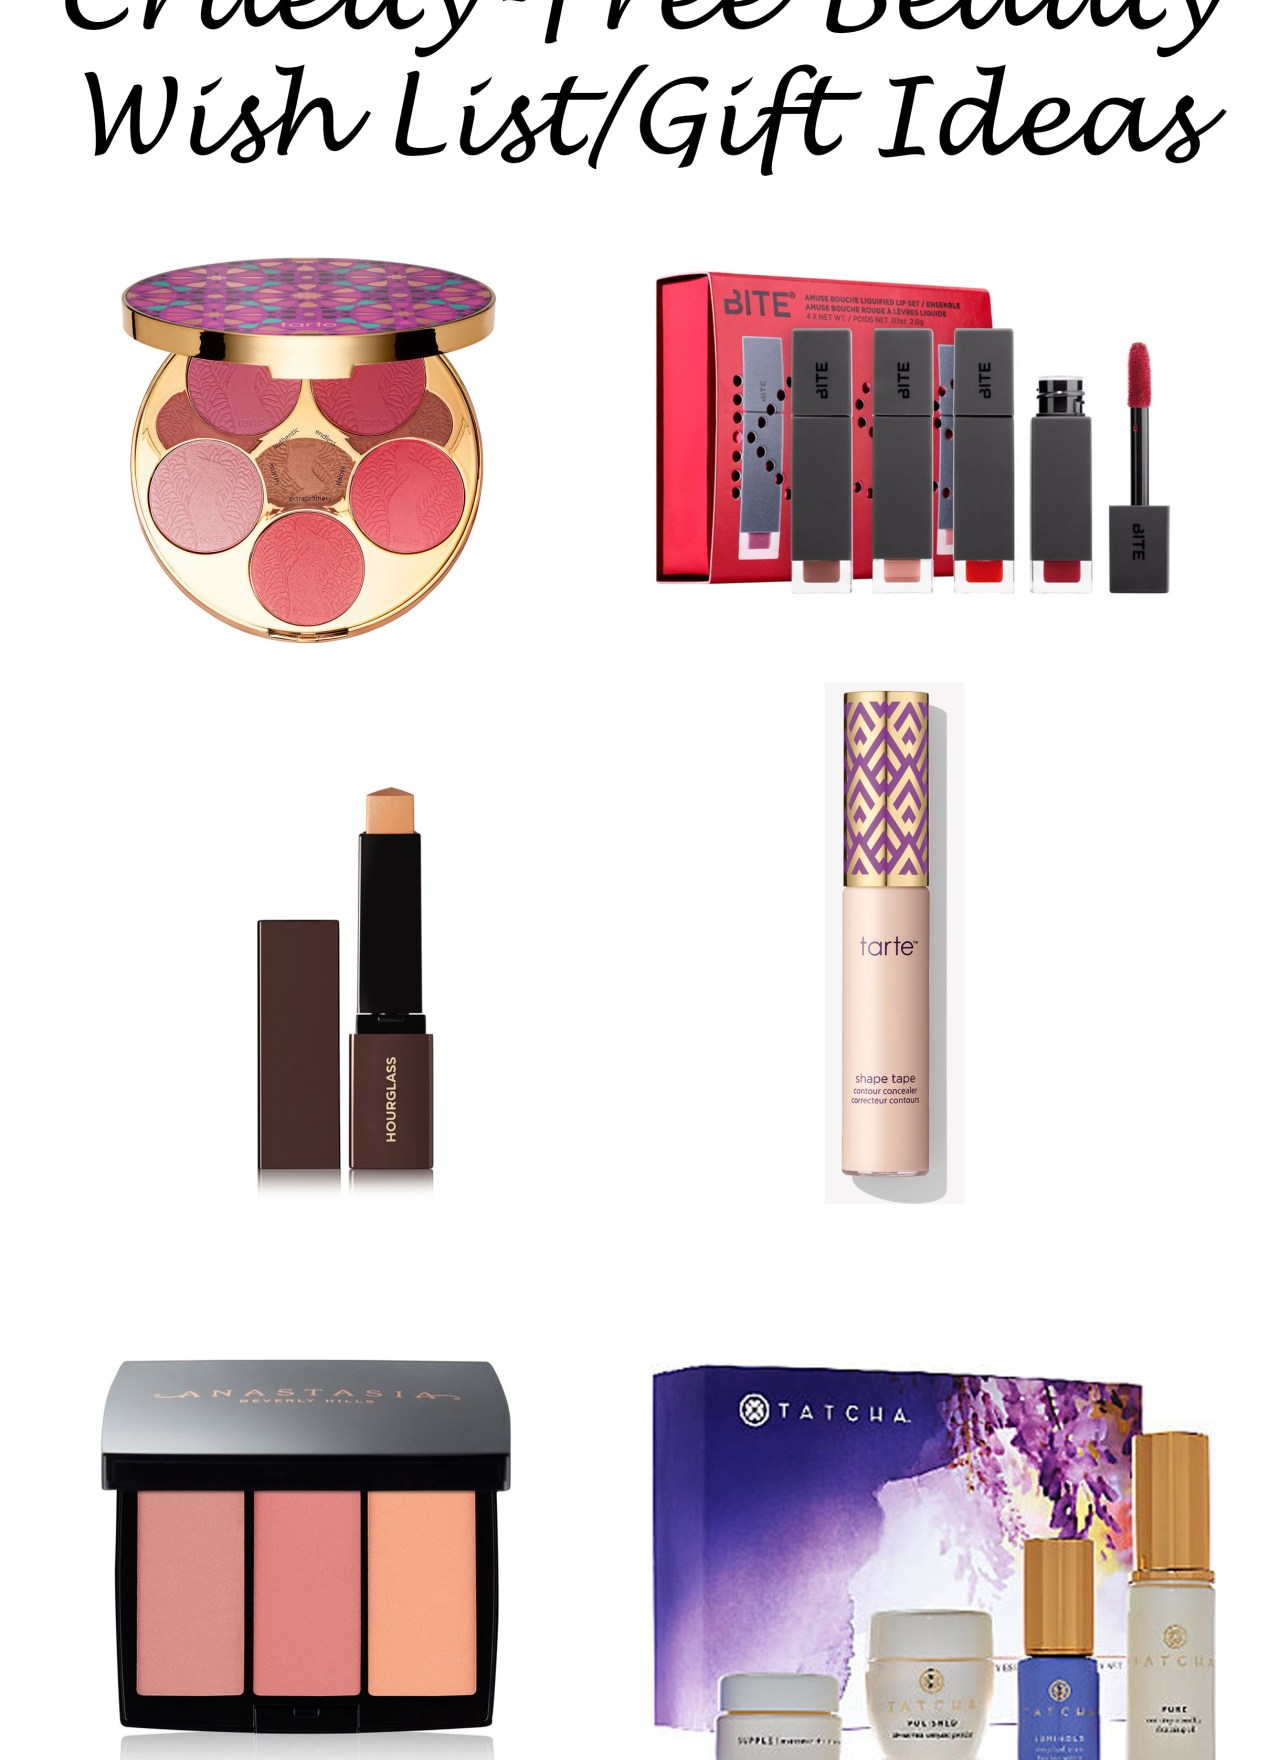 Cruelty-Free Beauty Wish List | Gift Ideas